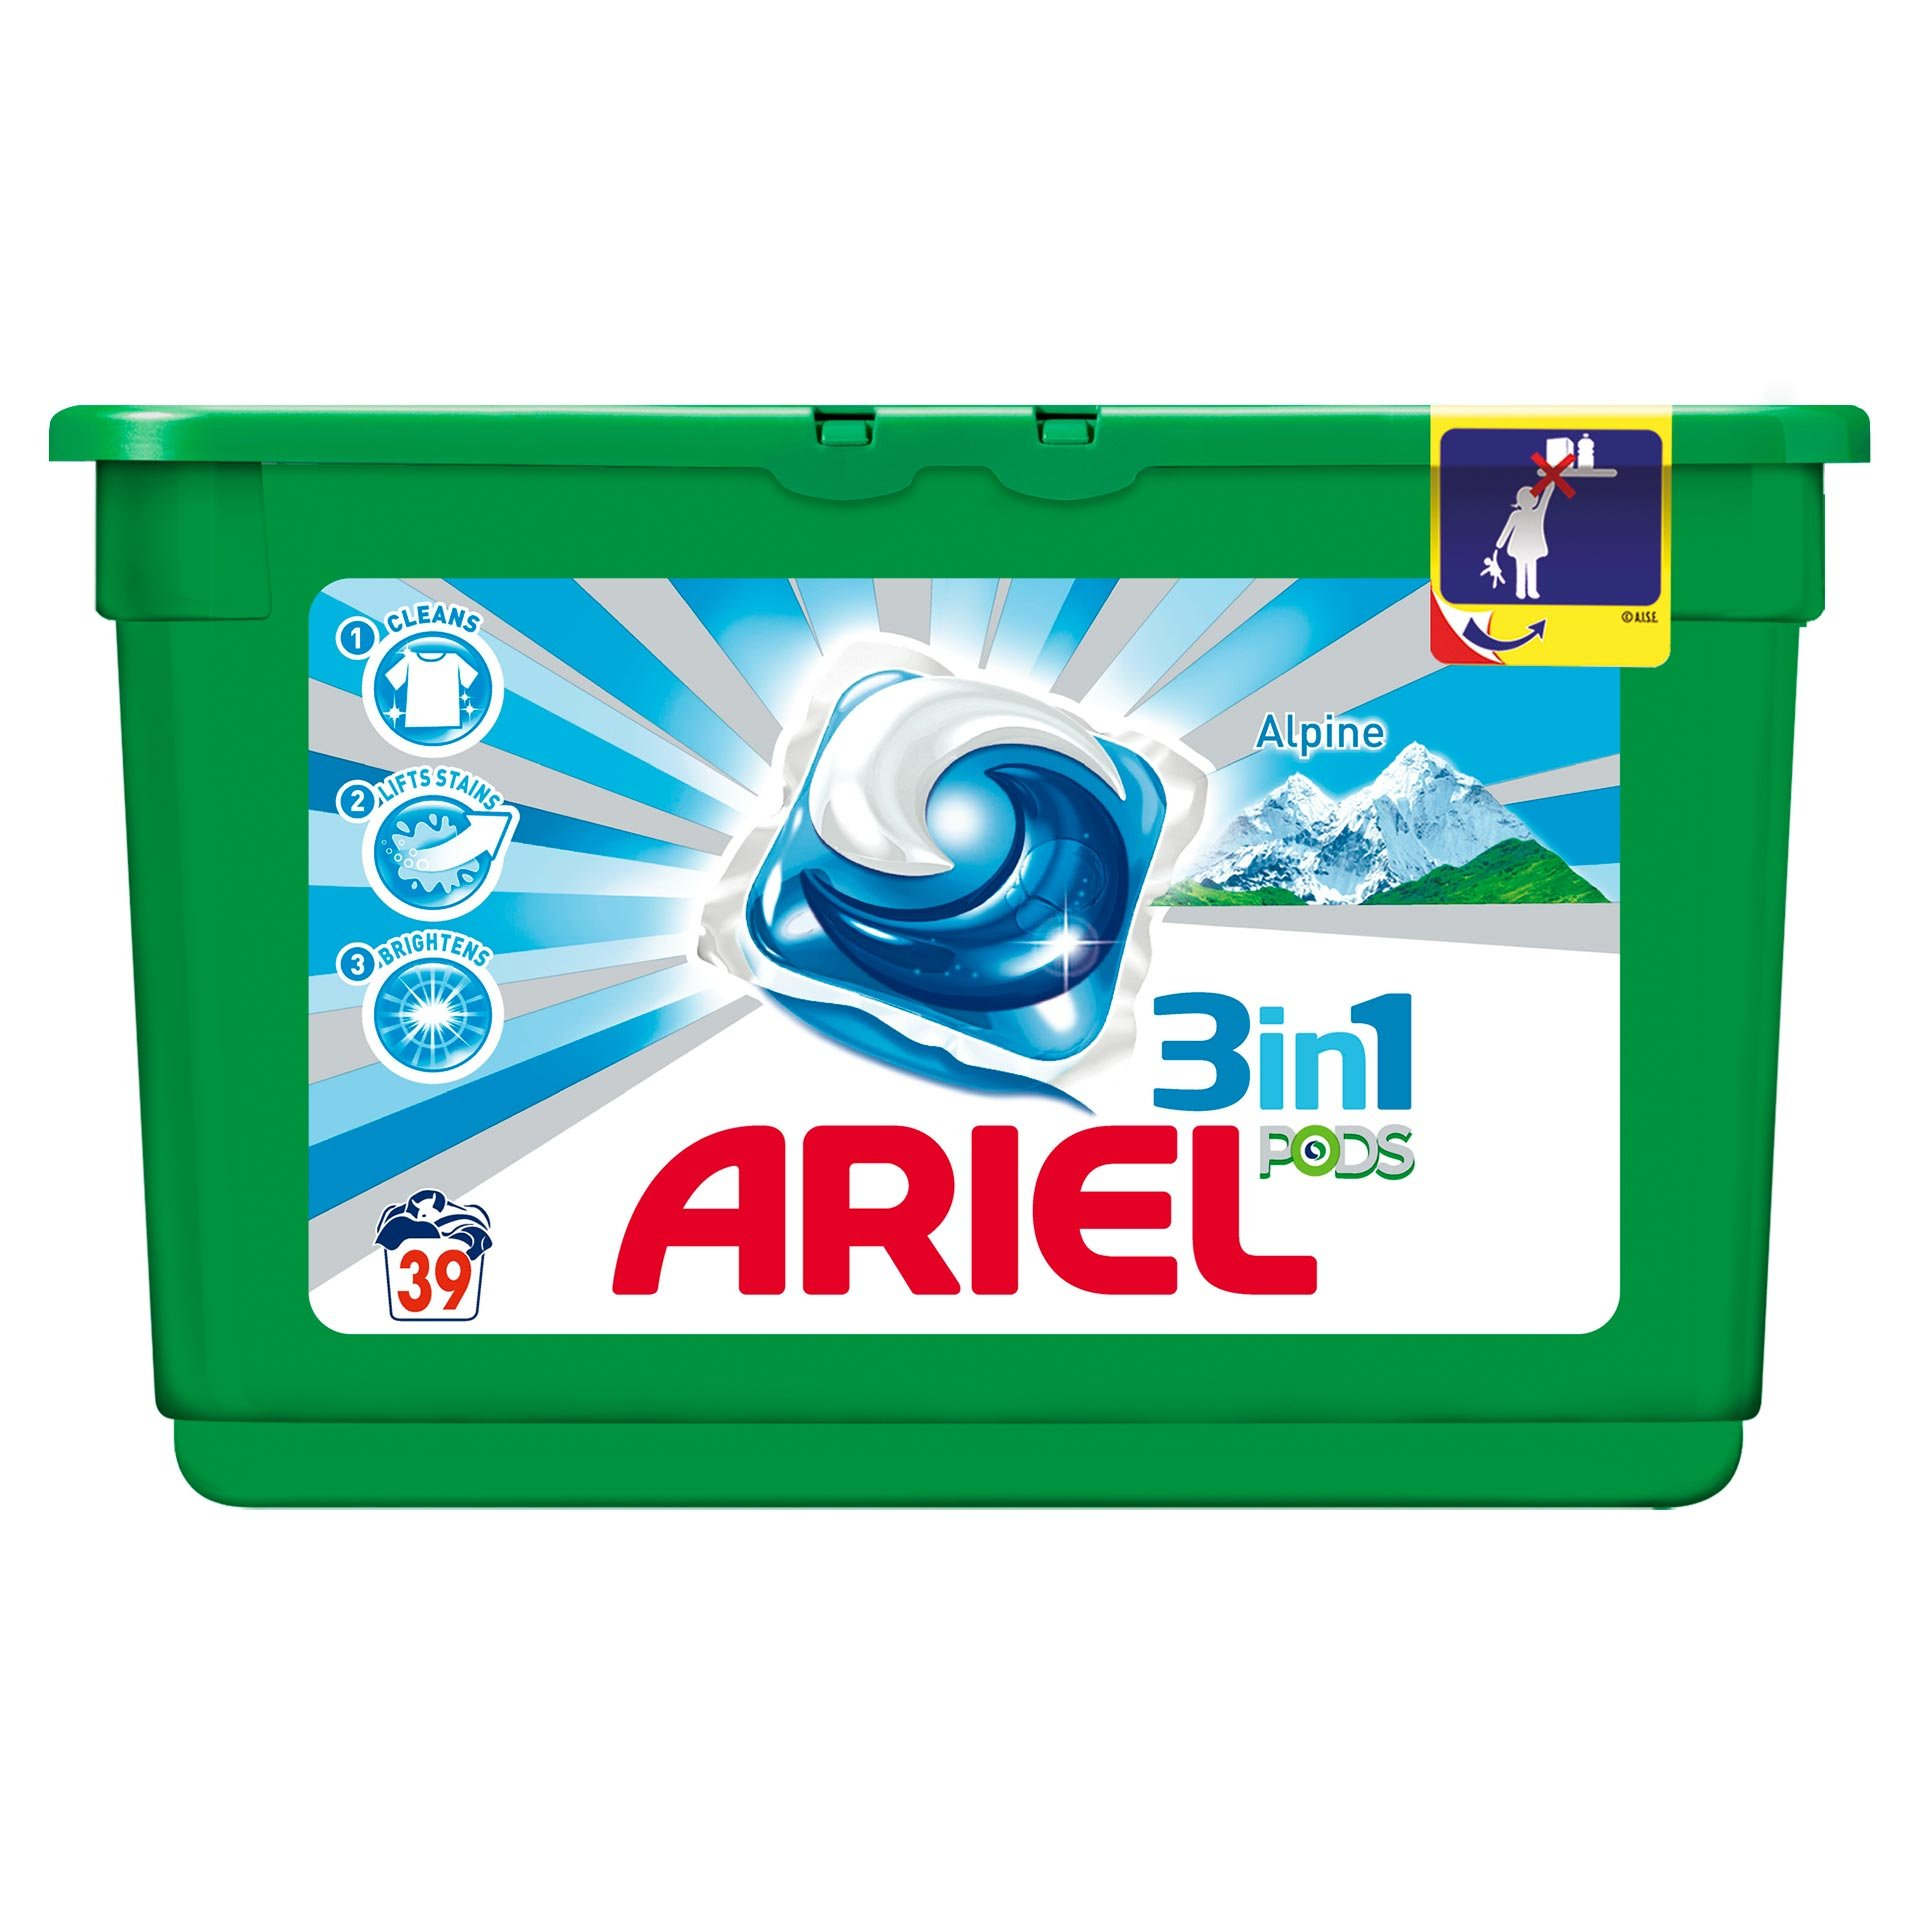 Ariel 3 in 1 Alpin Gel Capsules за бяло пране 39